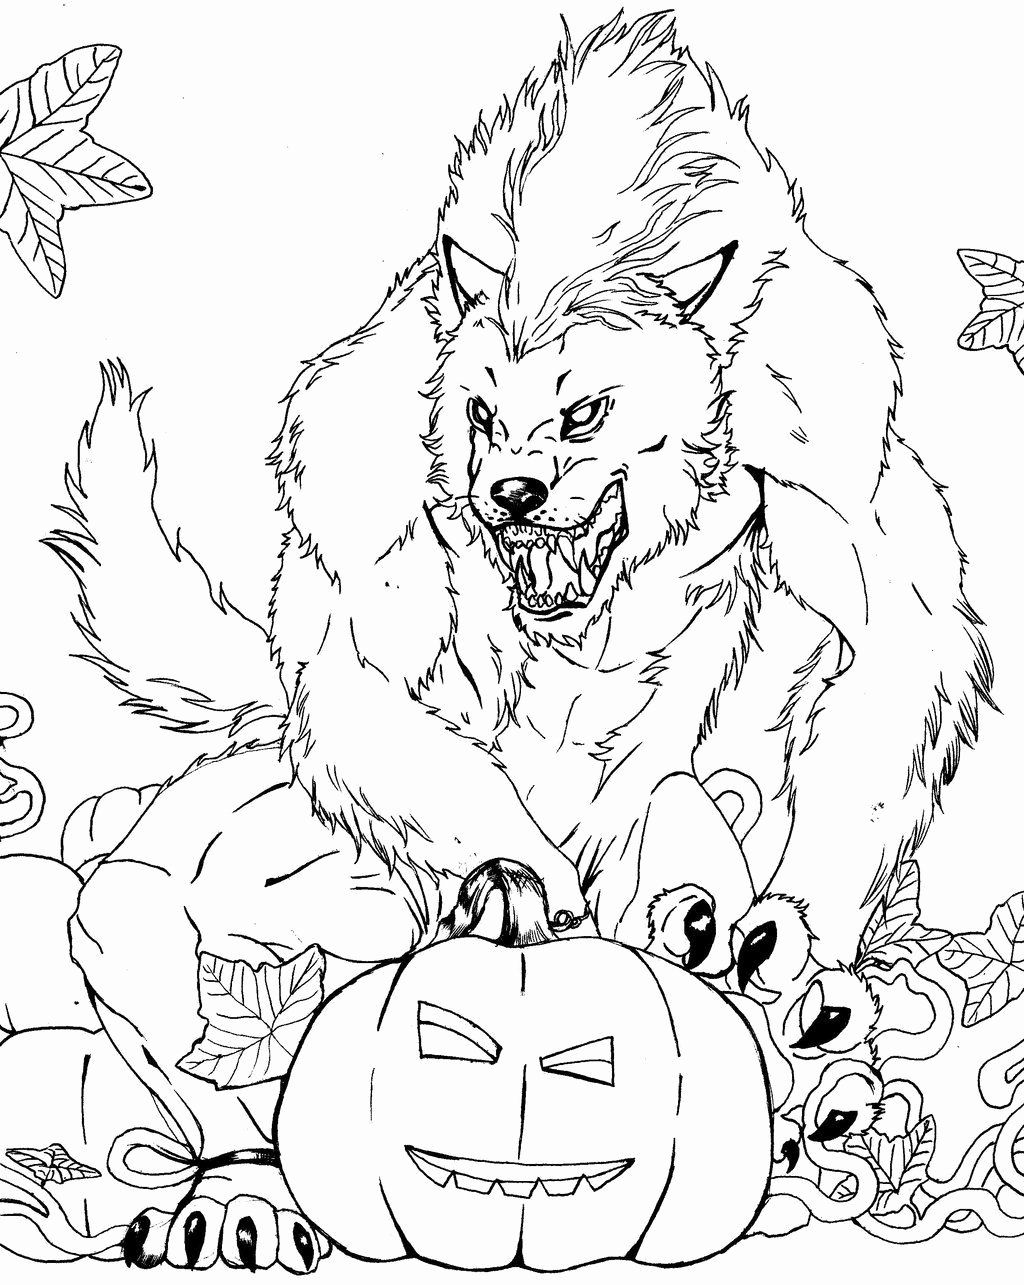 Scary Halloween Coloring Page Elegant Free Werewolf Coloring Page Halloween Coloring Pages Monster Coloring Pages Scary Halloween Coloring Pages